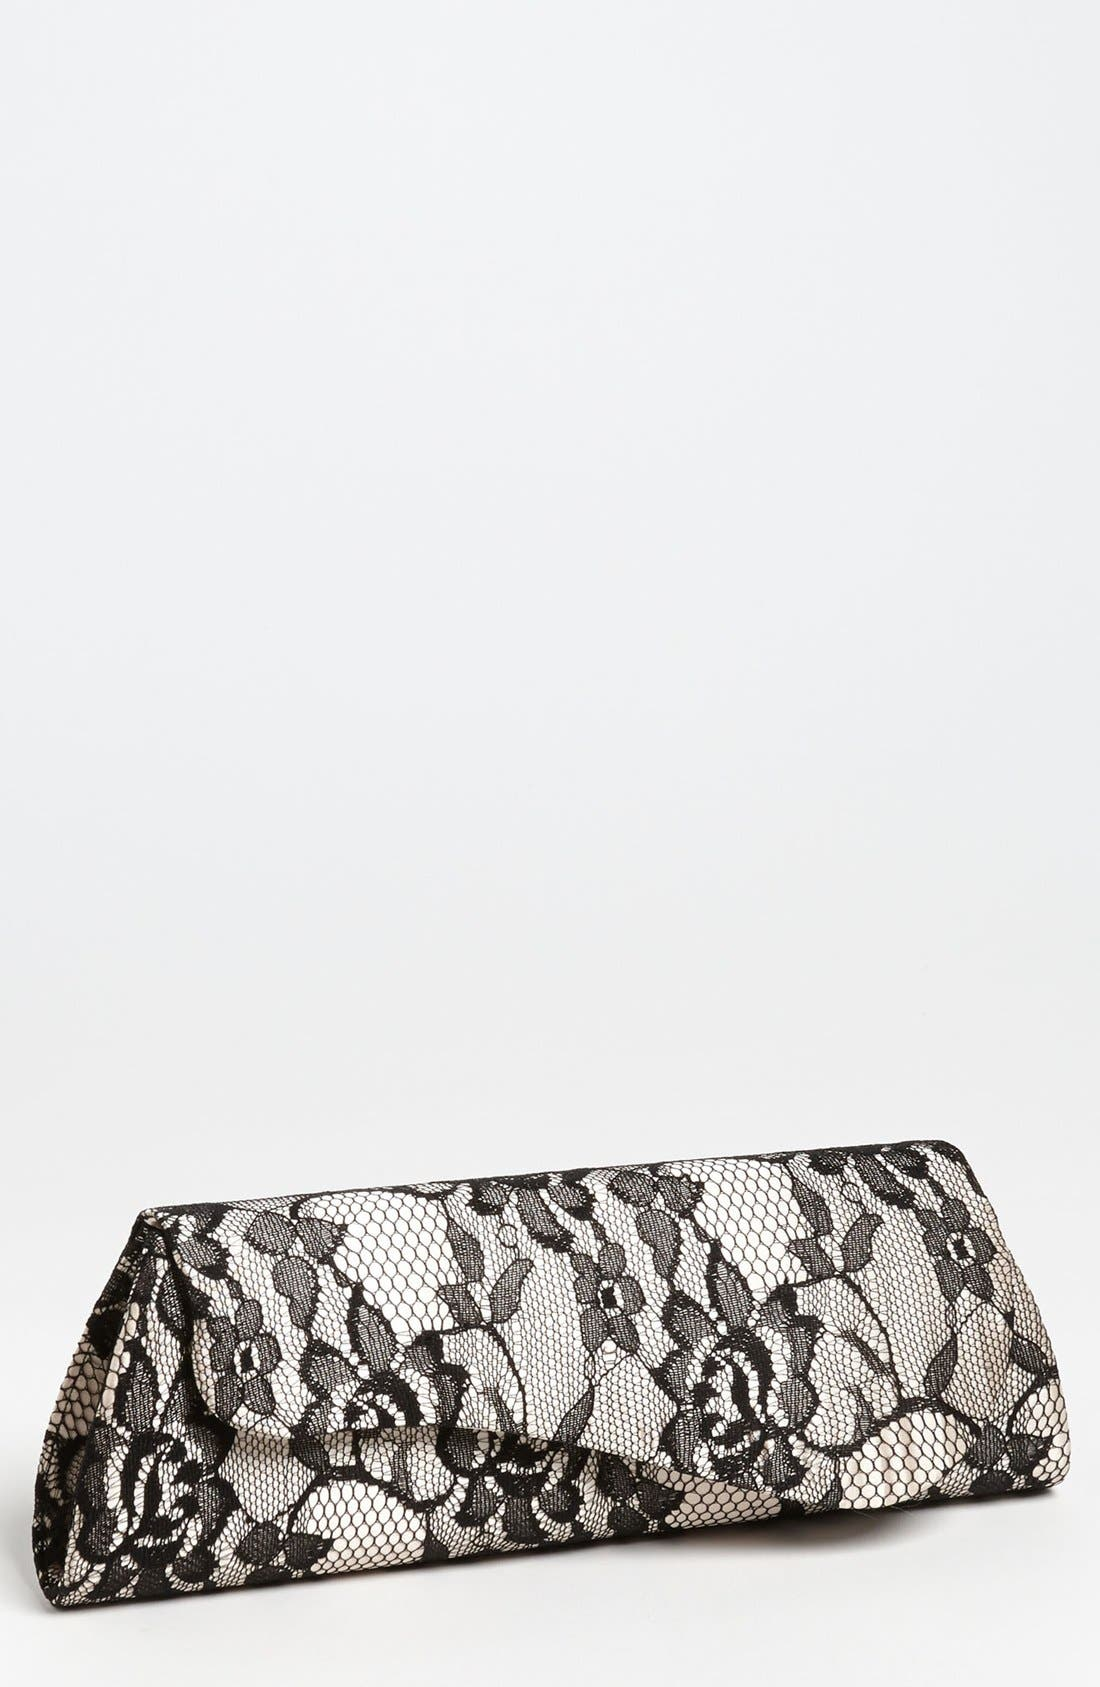 Main Image - Jessica McClintock Lace Envelope Clutch